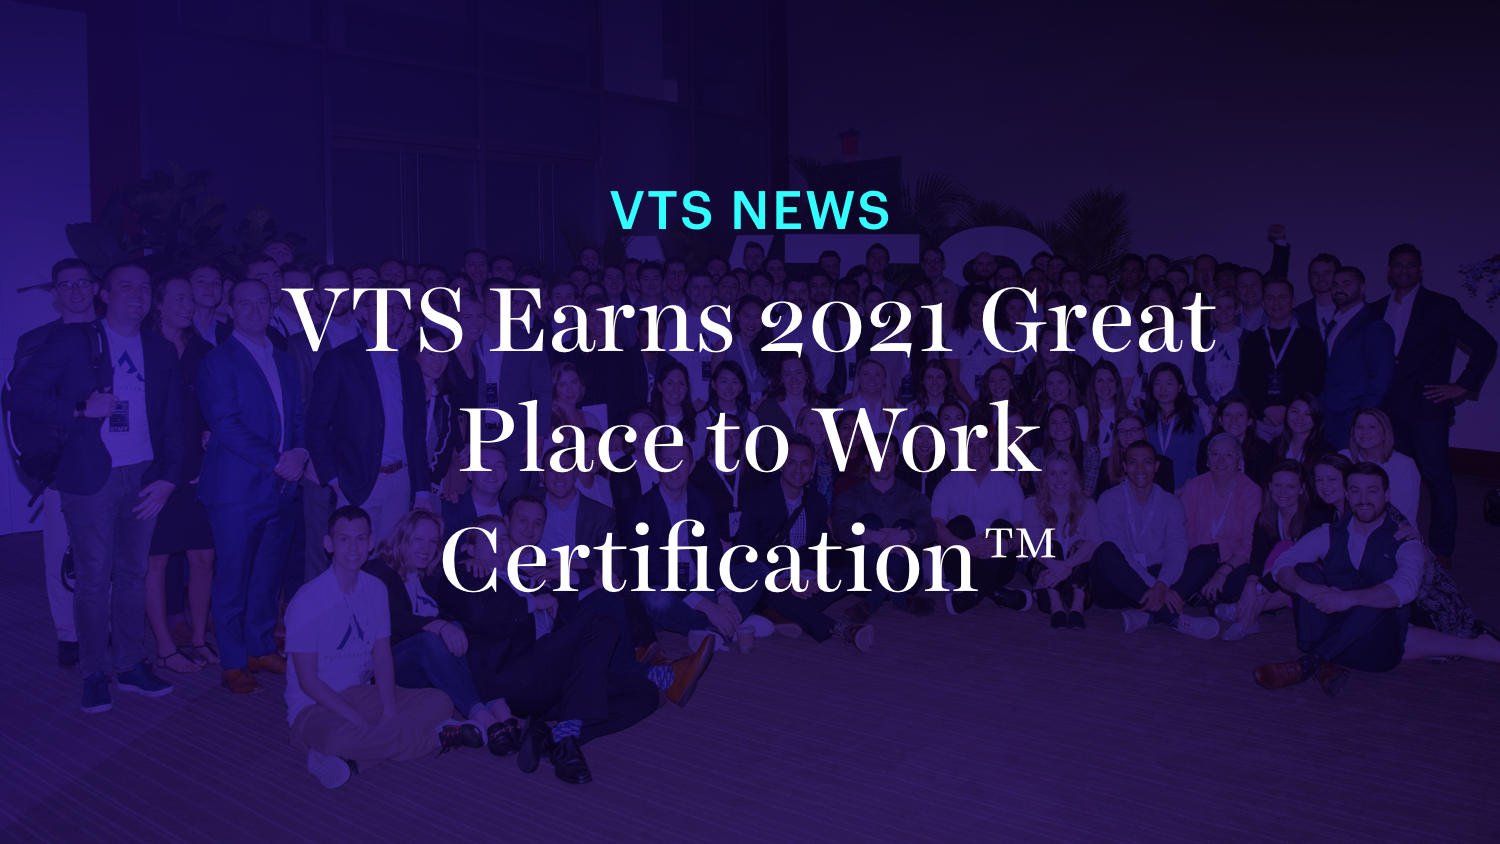 VTS Earns 2021 Great Place to Work Certification™